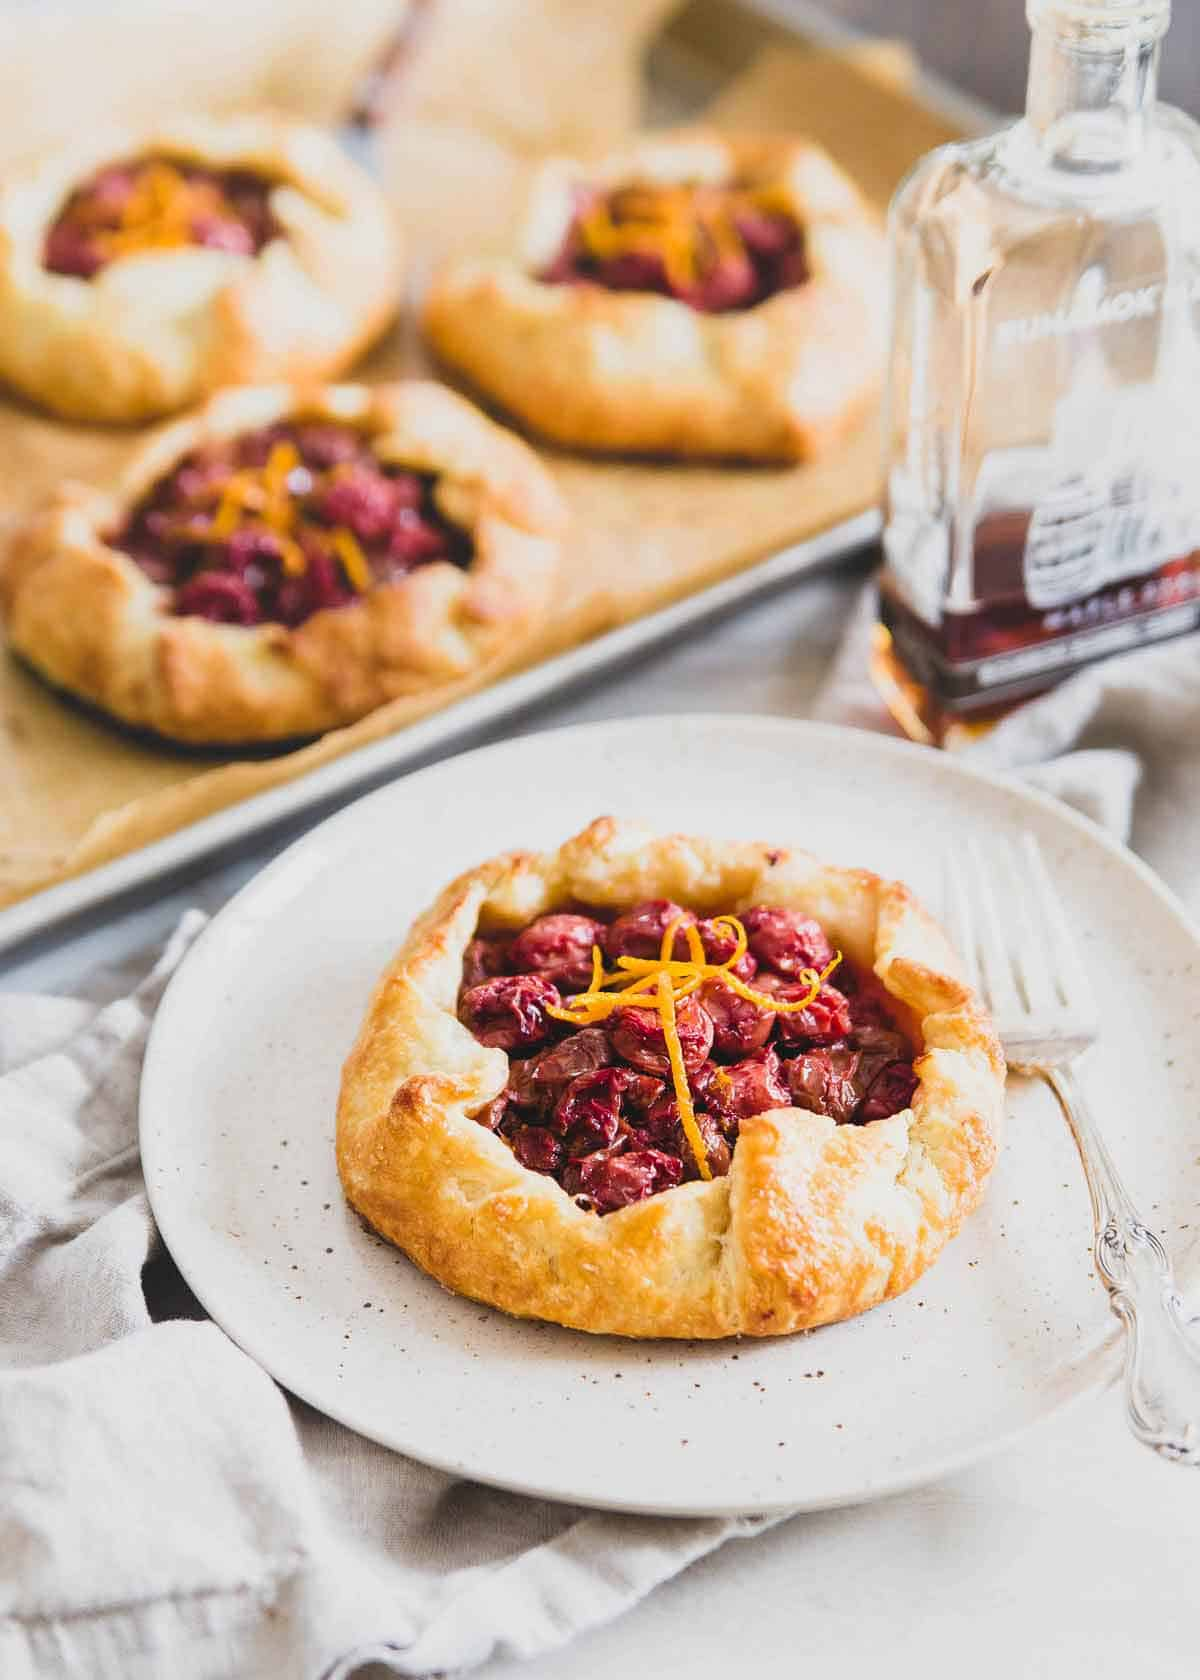 These cherry hand pies are filled with tart cherries, orange zest and sweetened with just a touch of maple syrup for a twist on the classic cherry pie.